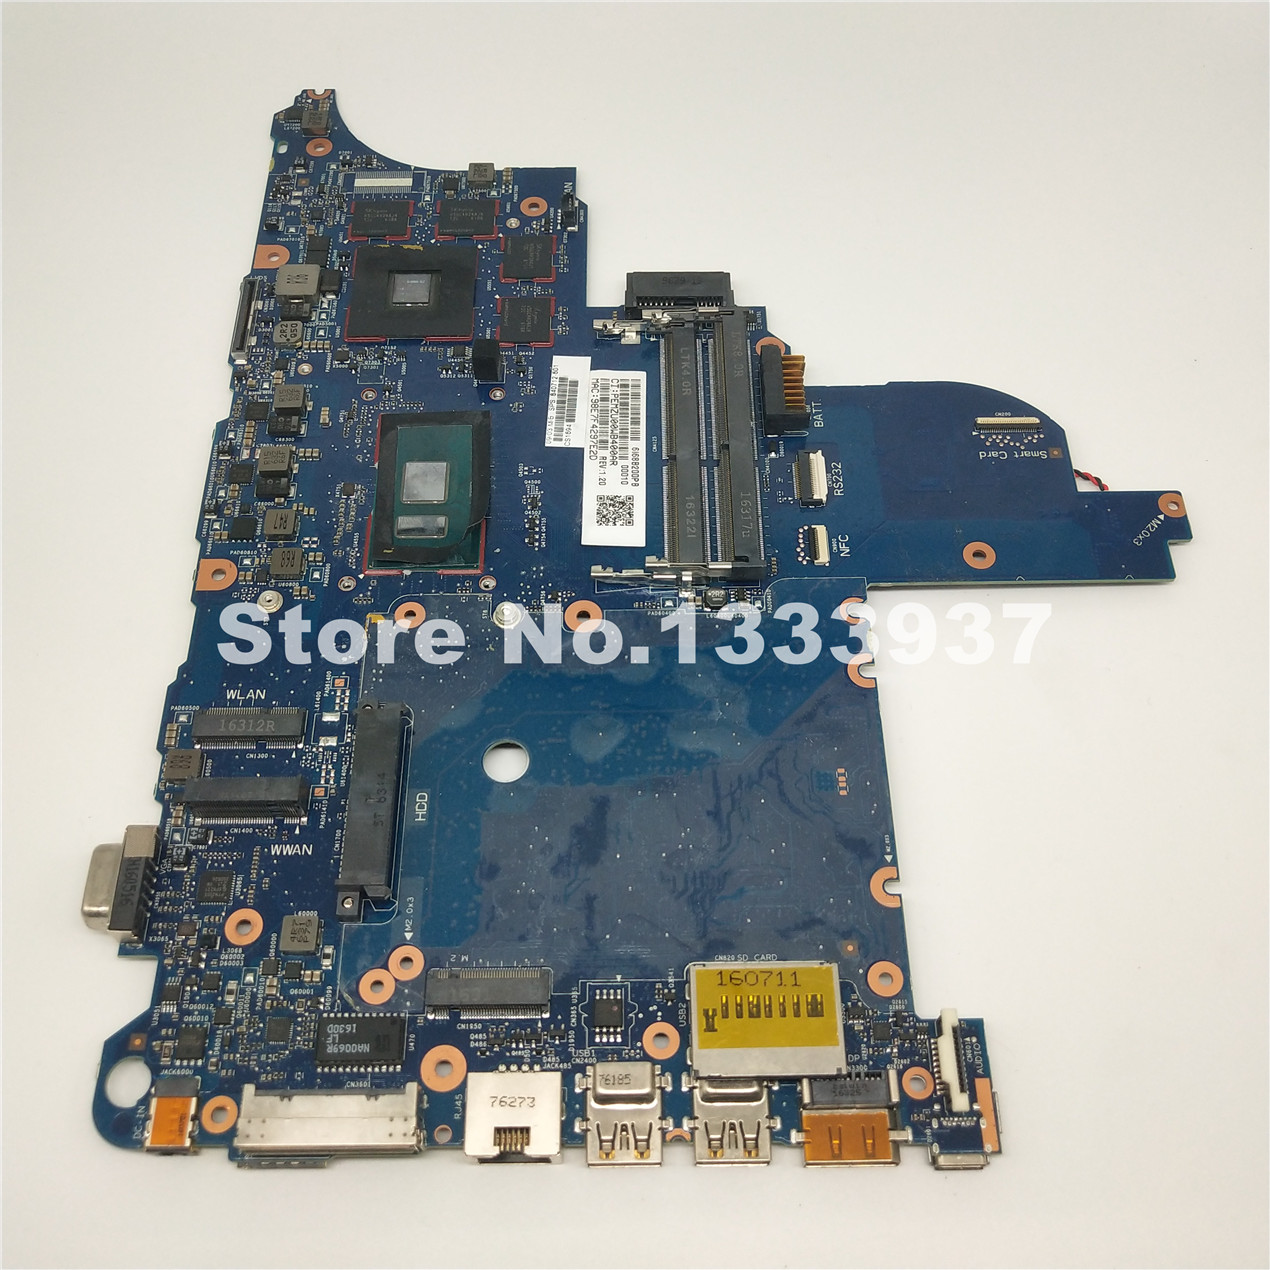 Mainboard 840712-601 840712-501 840712-001 For HP ProBook 640 G2 <font><b>650</b></font> G2 640-G2 <font><b>650</b></font>-G2 Laptop motherboard <font><b>I5</b></font>-6300U SR2F0 image